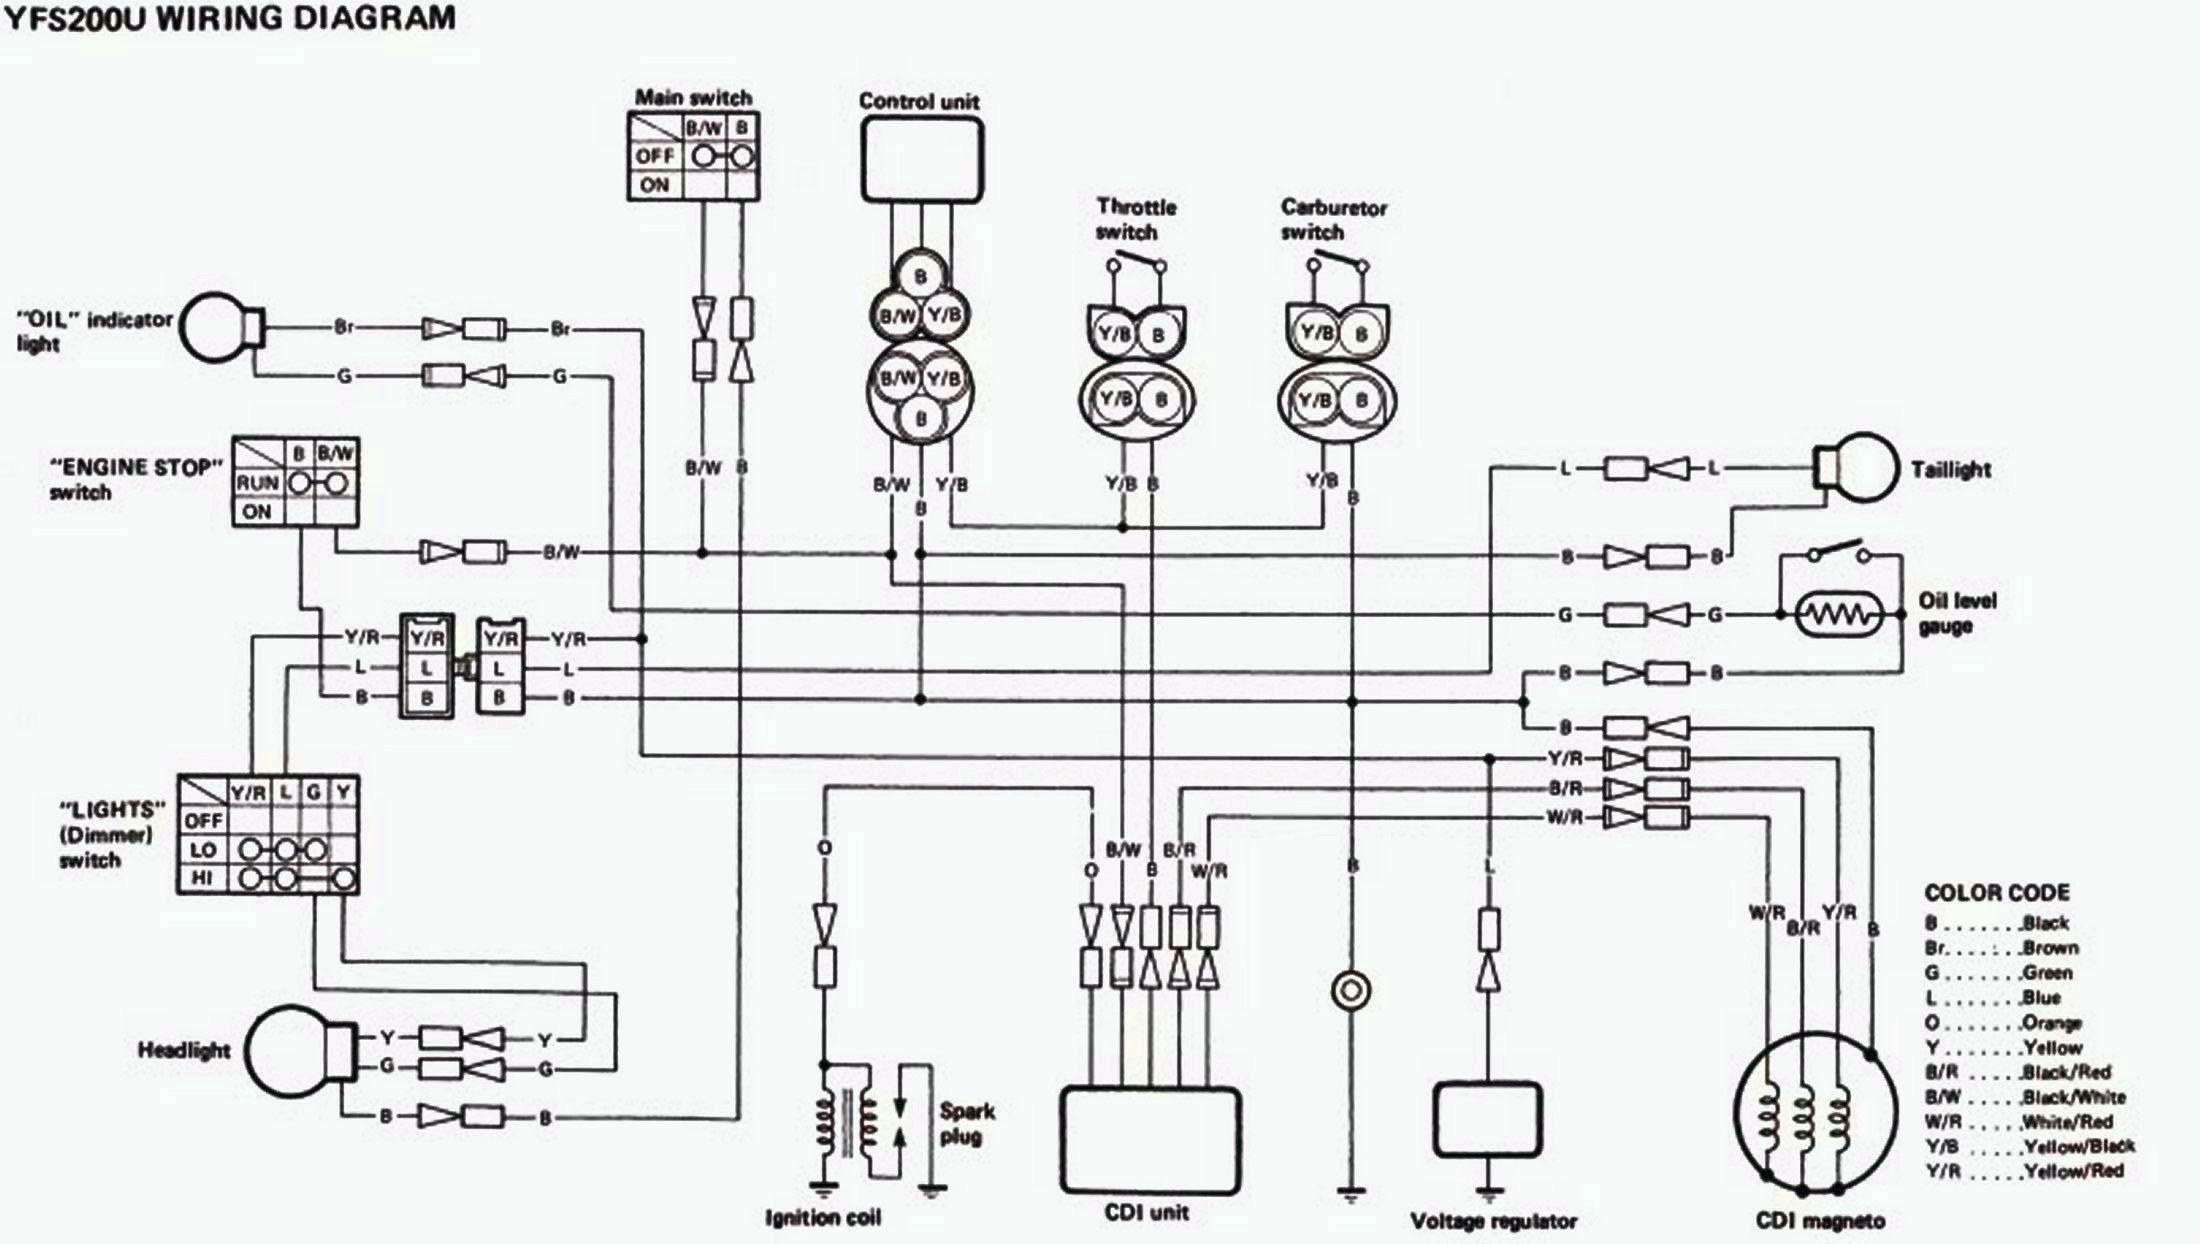 yamaha blaster wiring scamatic of 1989 yamaha blaster wiring diagram stock wiring diagrams- | blasterforum.com